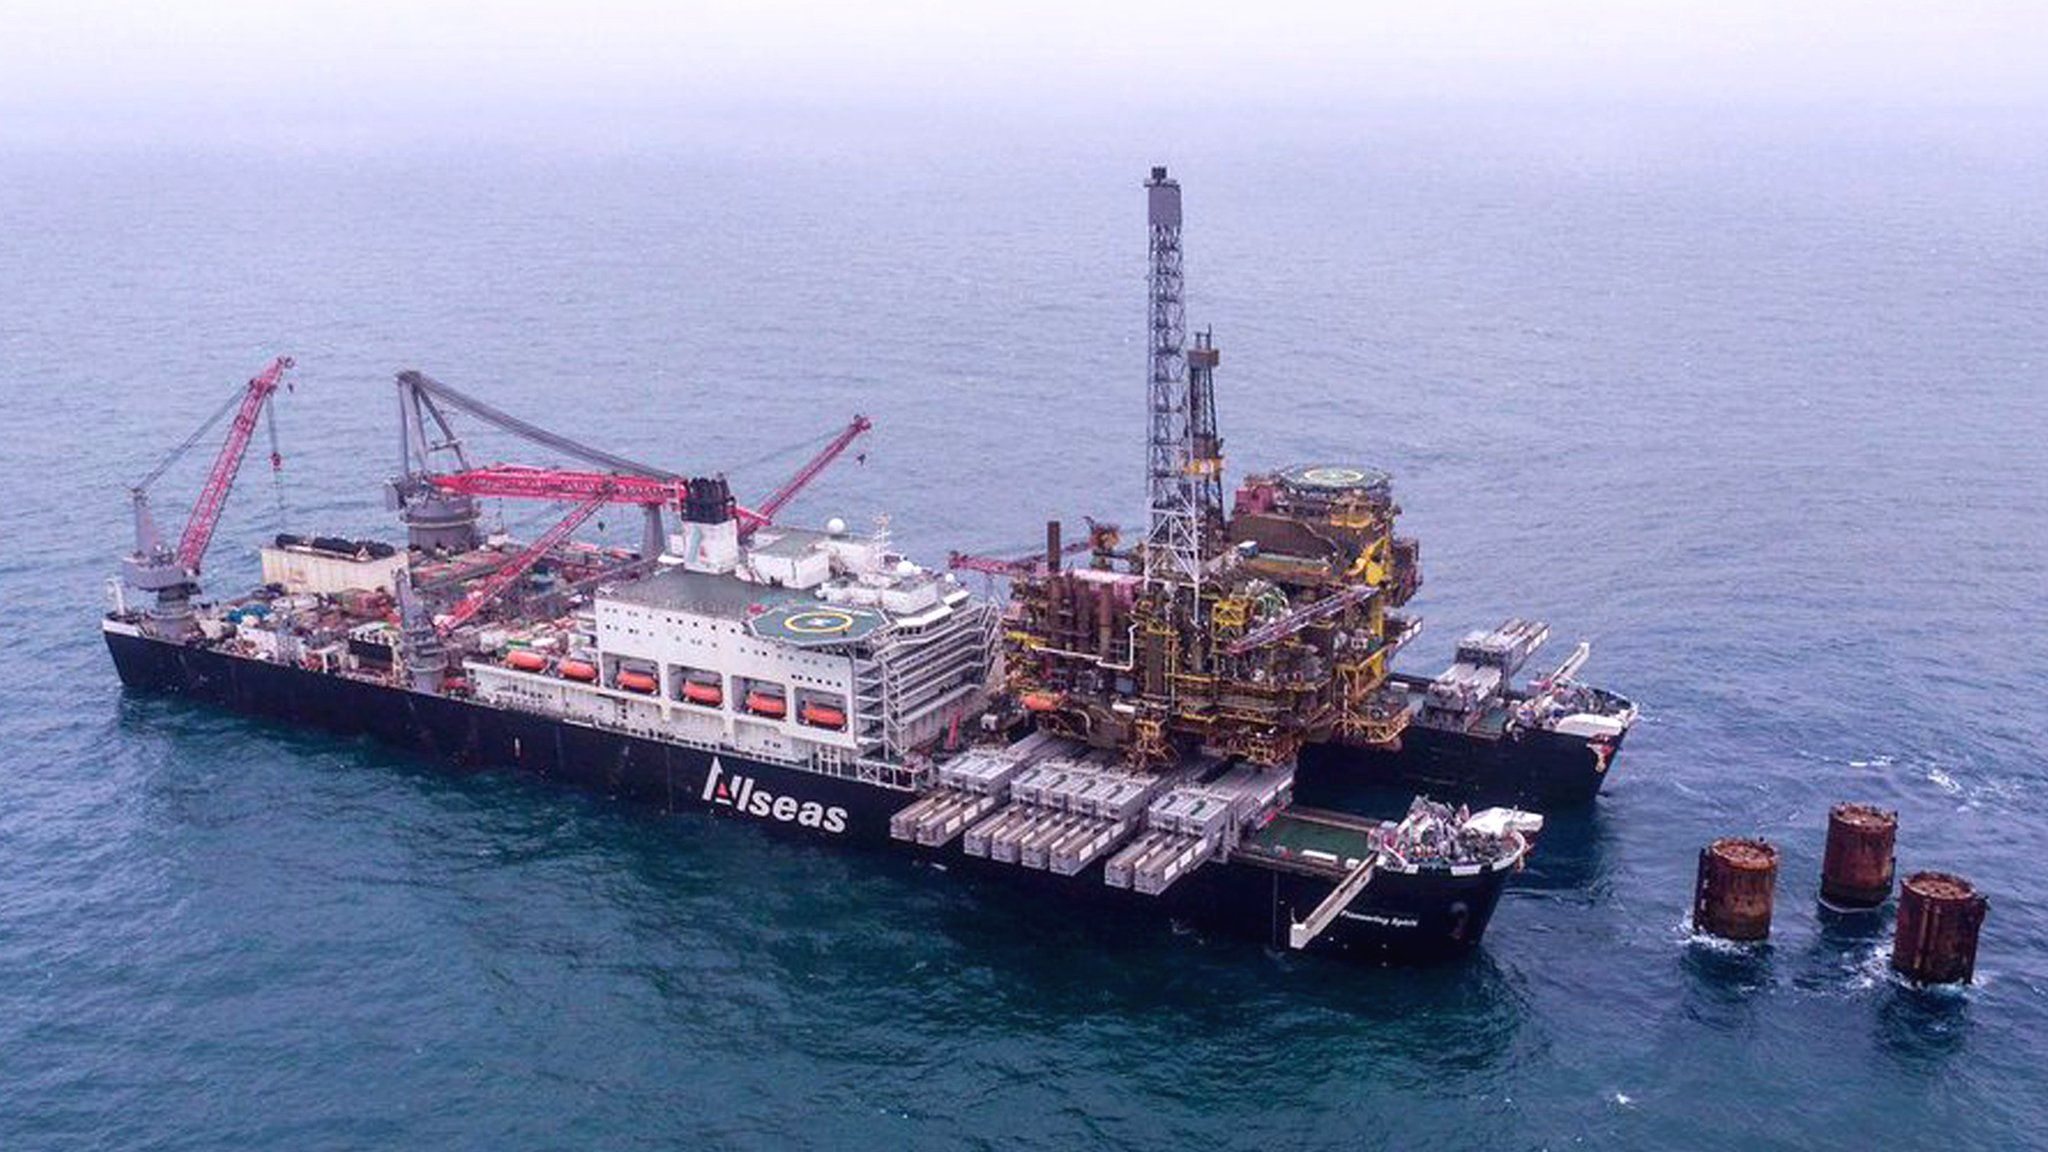 Badspiegel Jolled Second Platform Leaves Iconic Brent Oil Field In North Sea